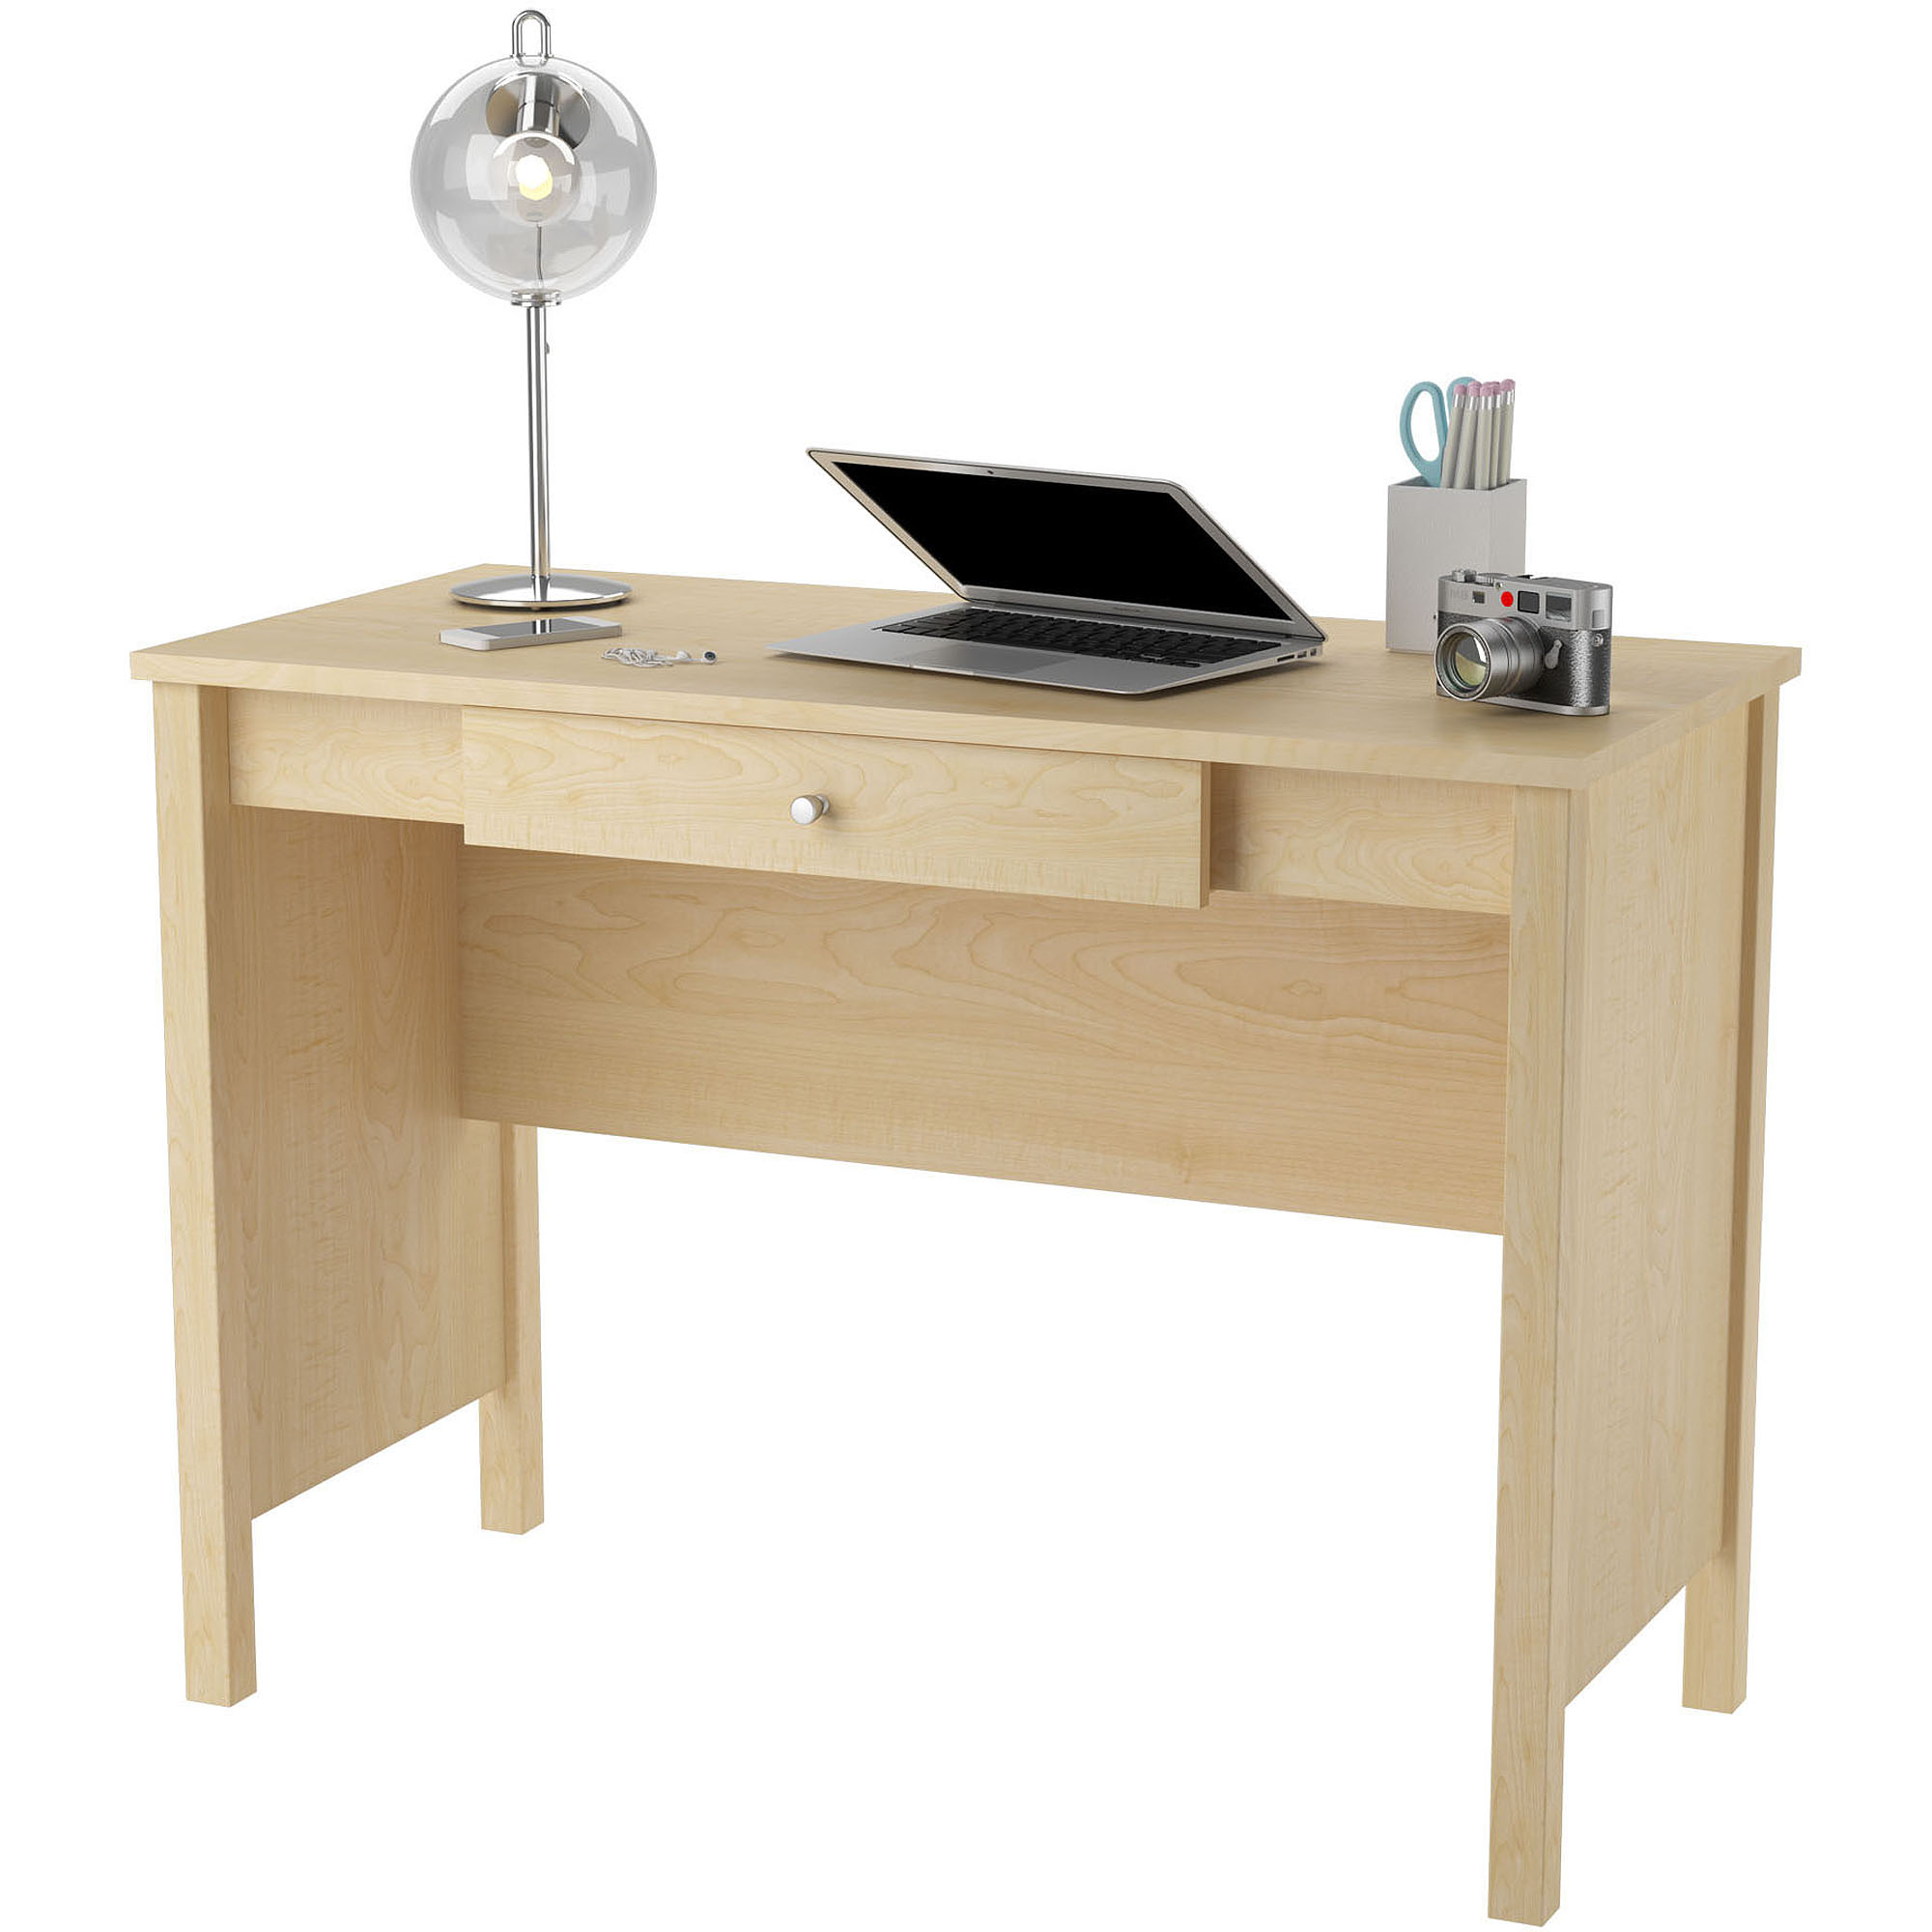 Mainstays Desk, Multiple Colors